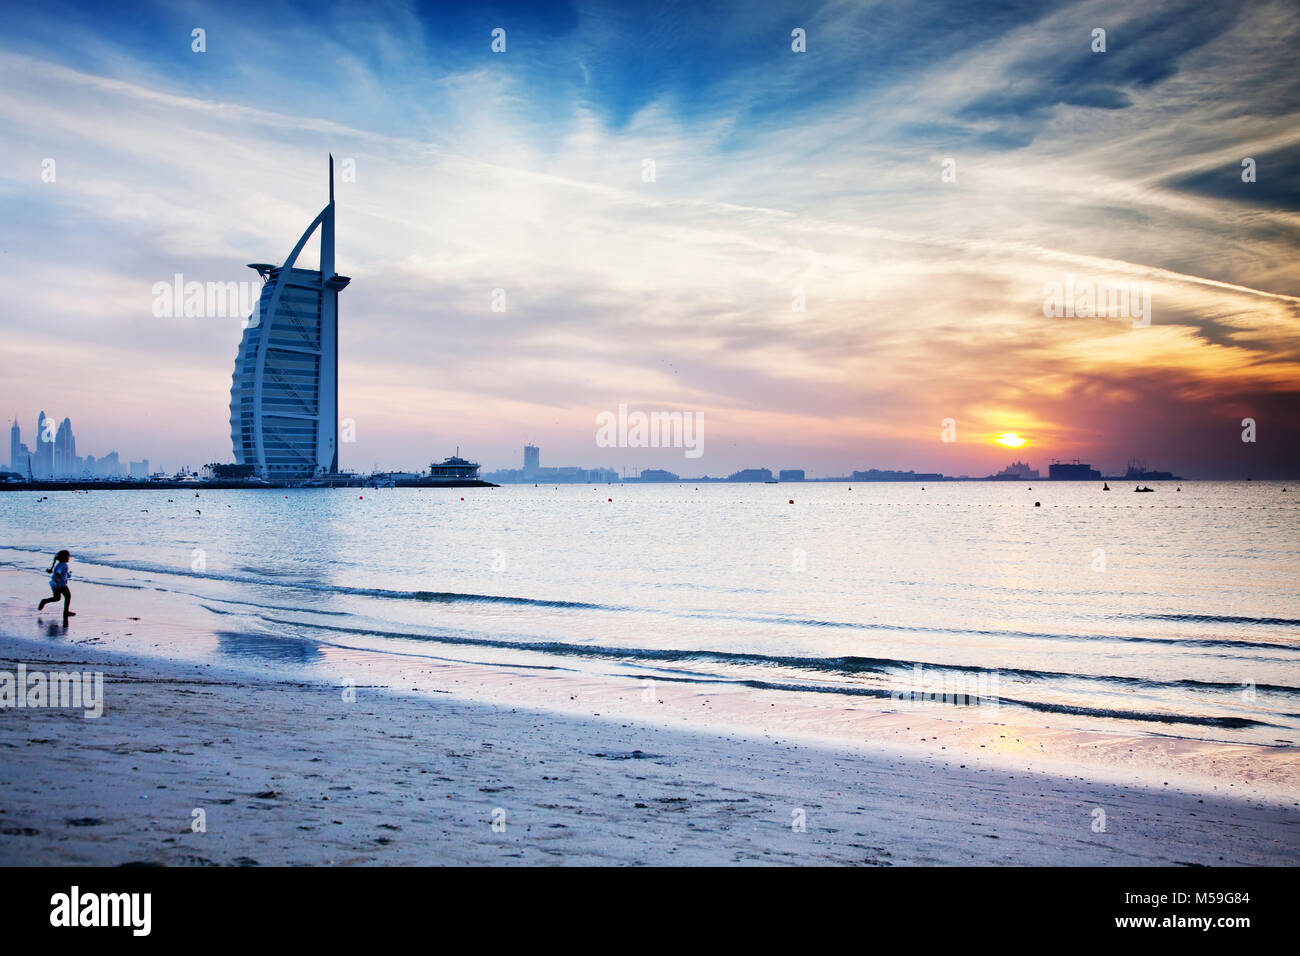 DUBAI, UAE - FEBRUARY 2018 :The world's first seven stars luxury hotel Burj Al Arab at sunset seen from Jumeirah - Stock Image